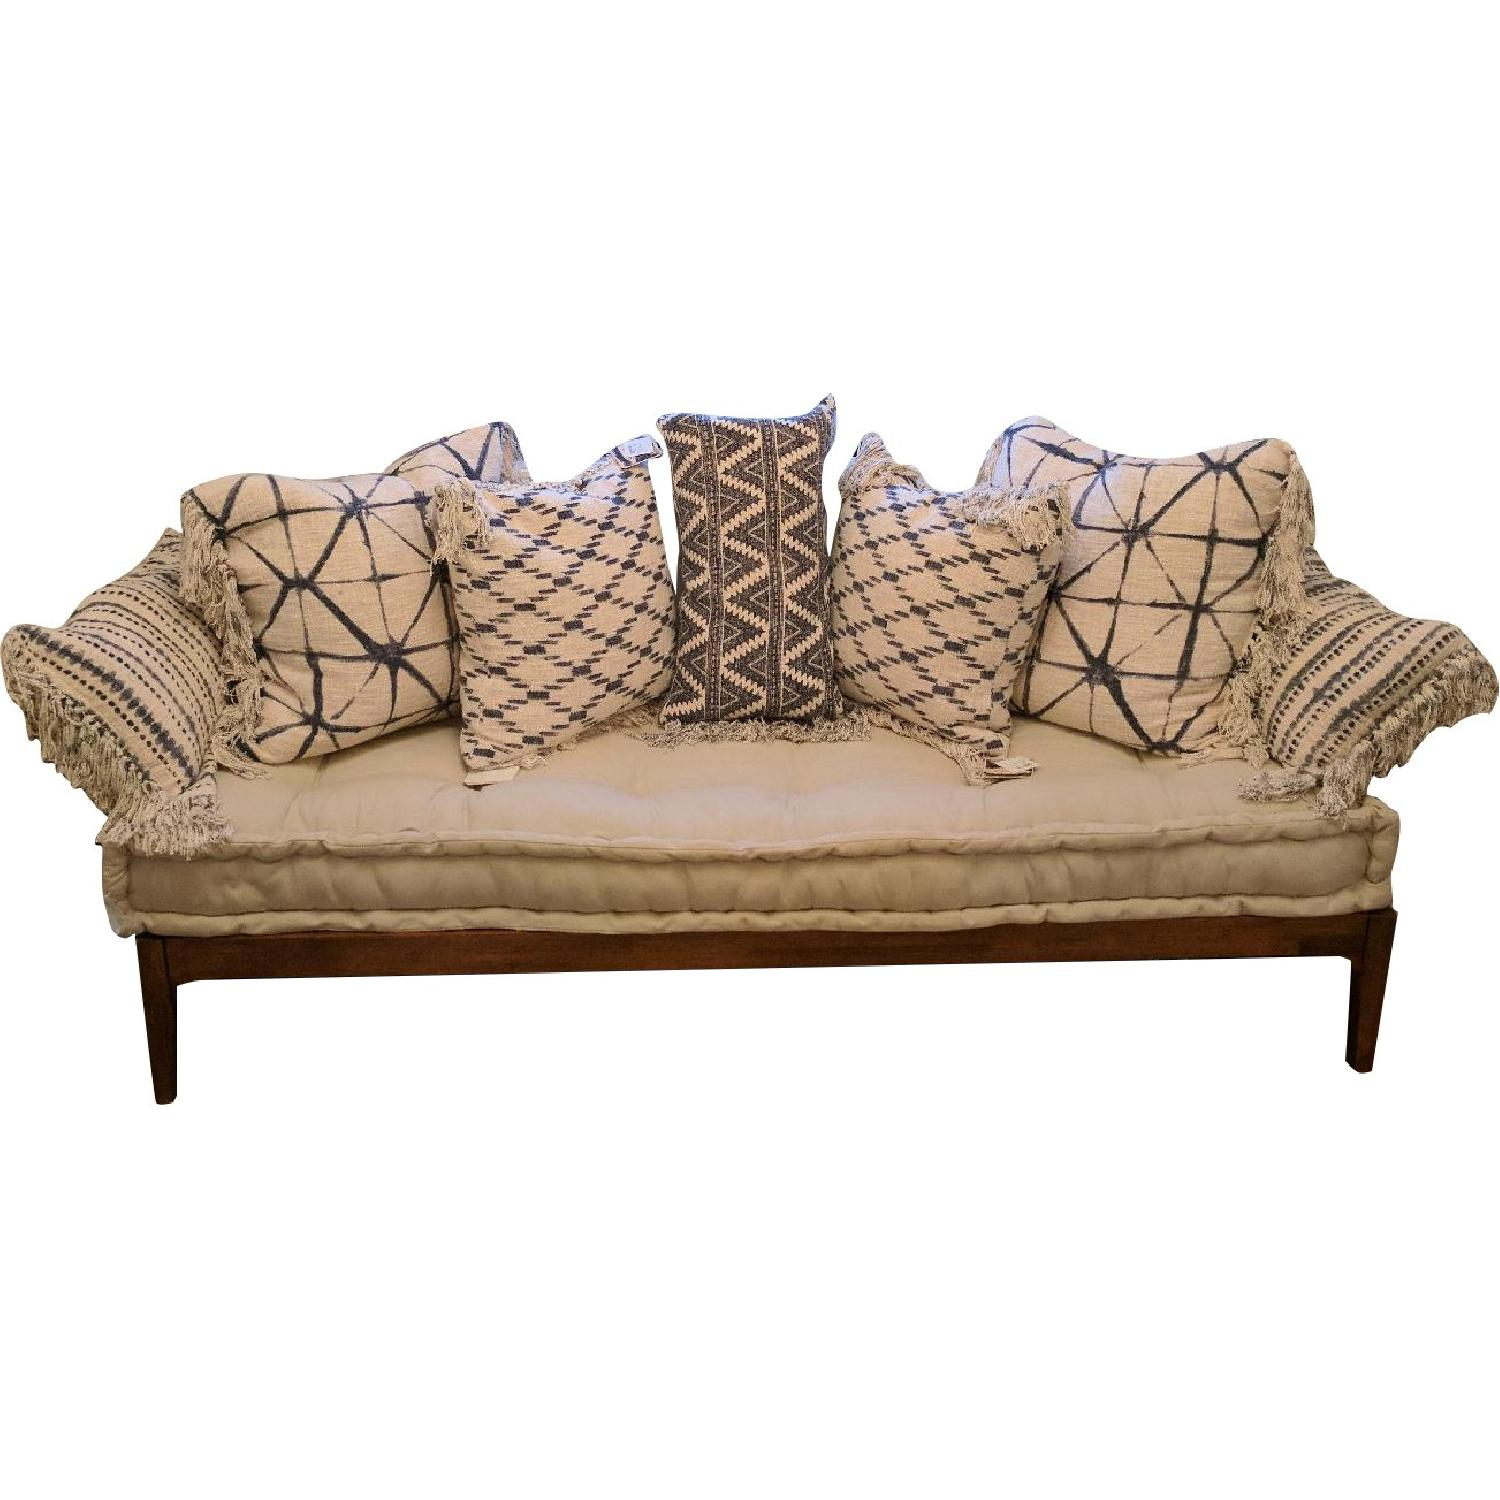 Urban Outfitters Hopper Daybed w/ Cushion-4